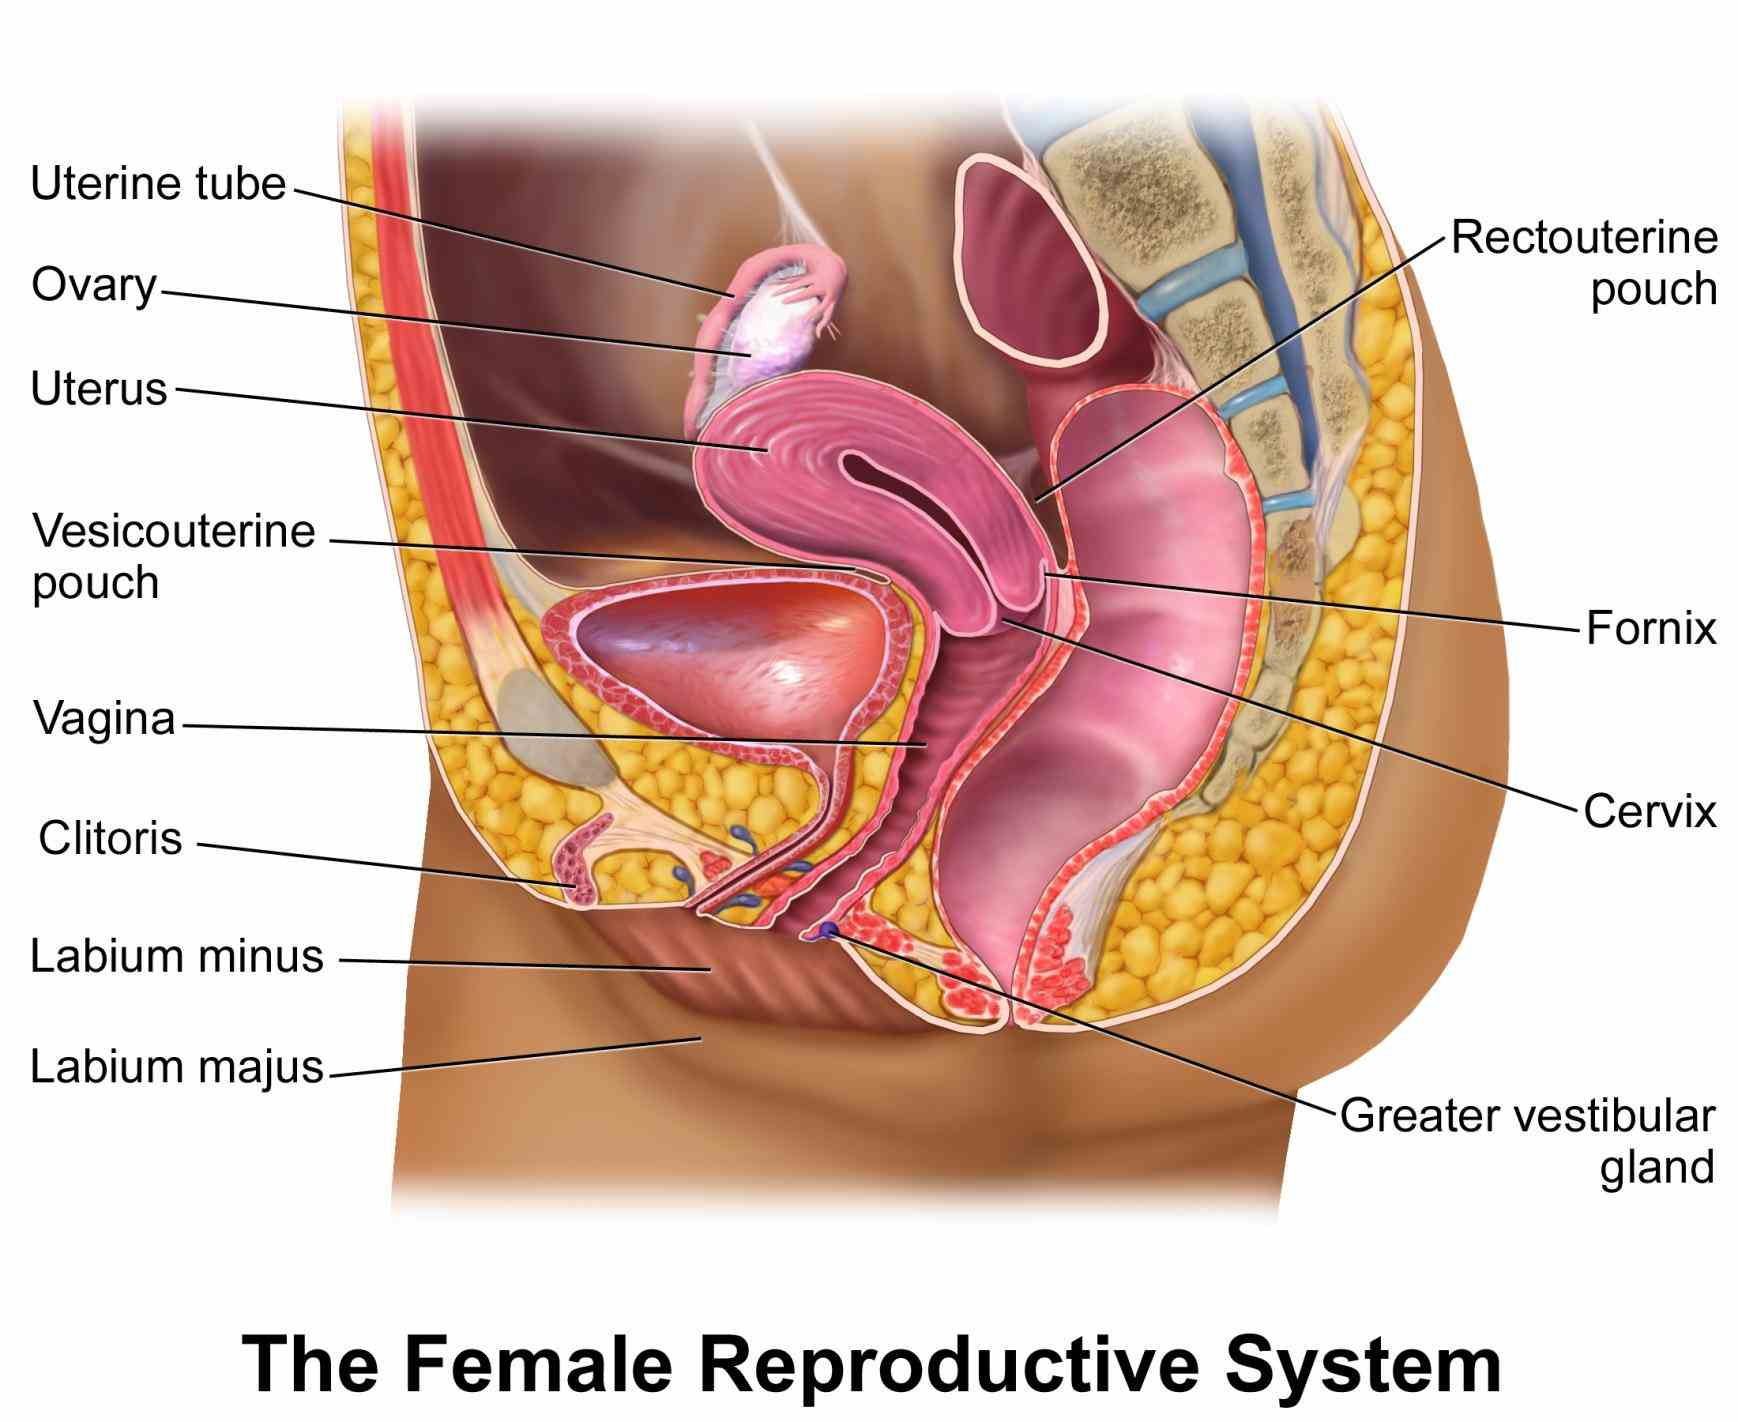 Pictures Of Female Reproductive System In Human Beings Pictures Wallpapers